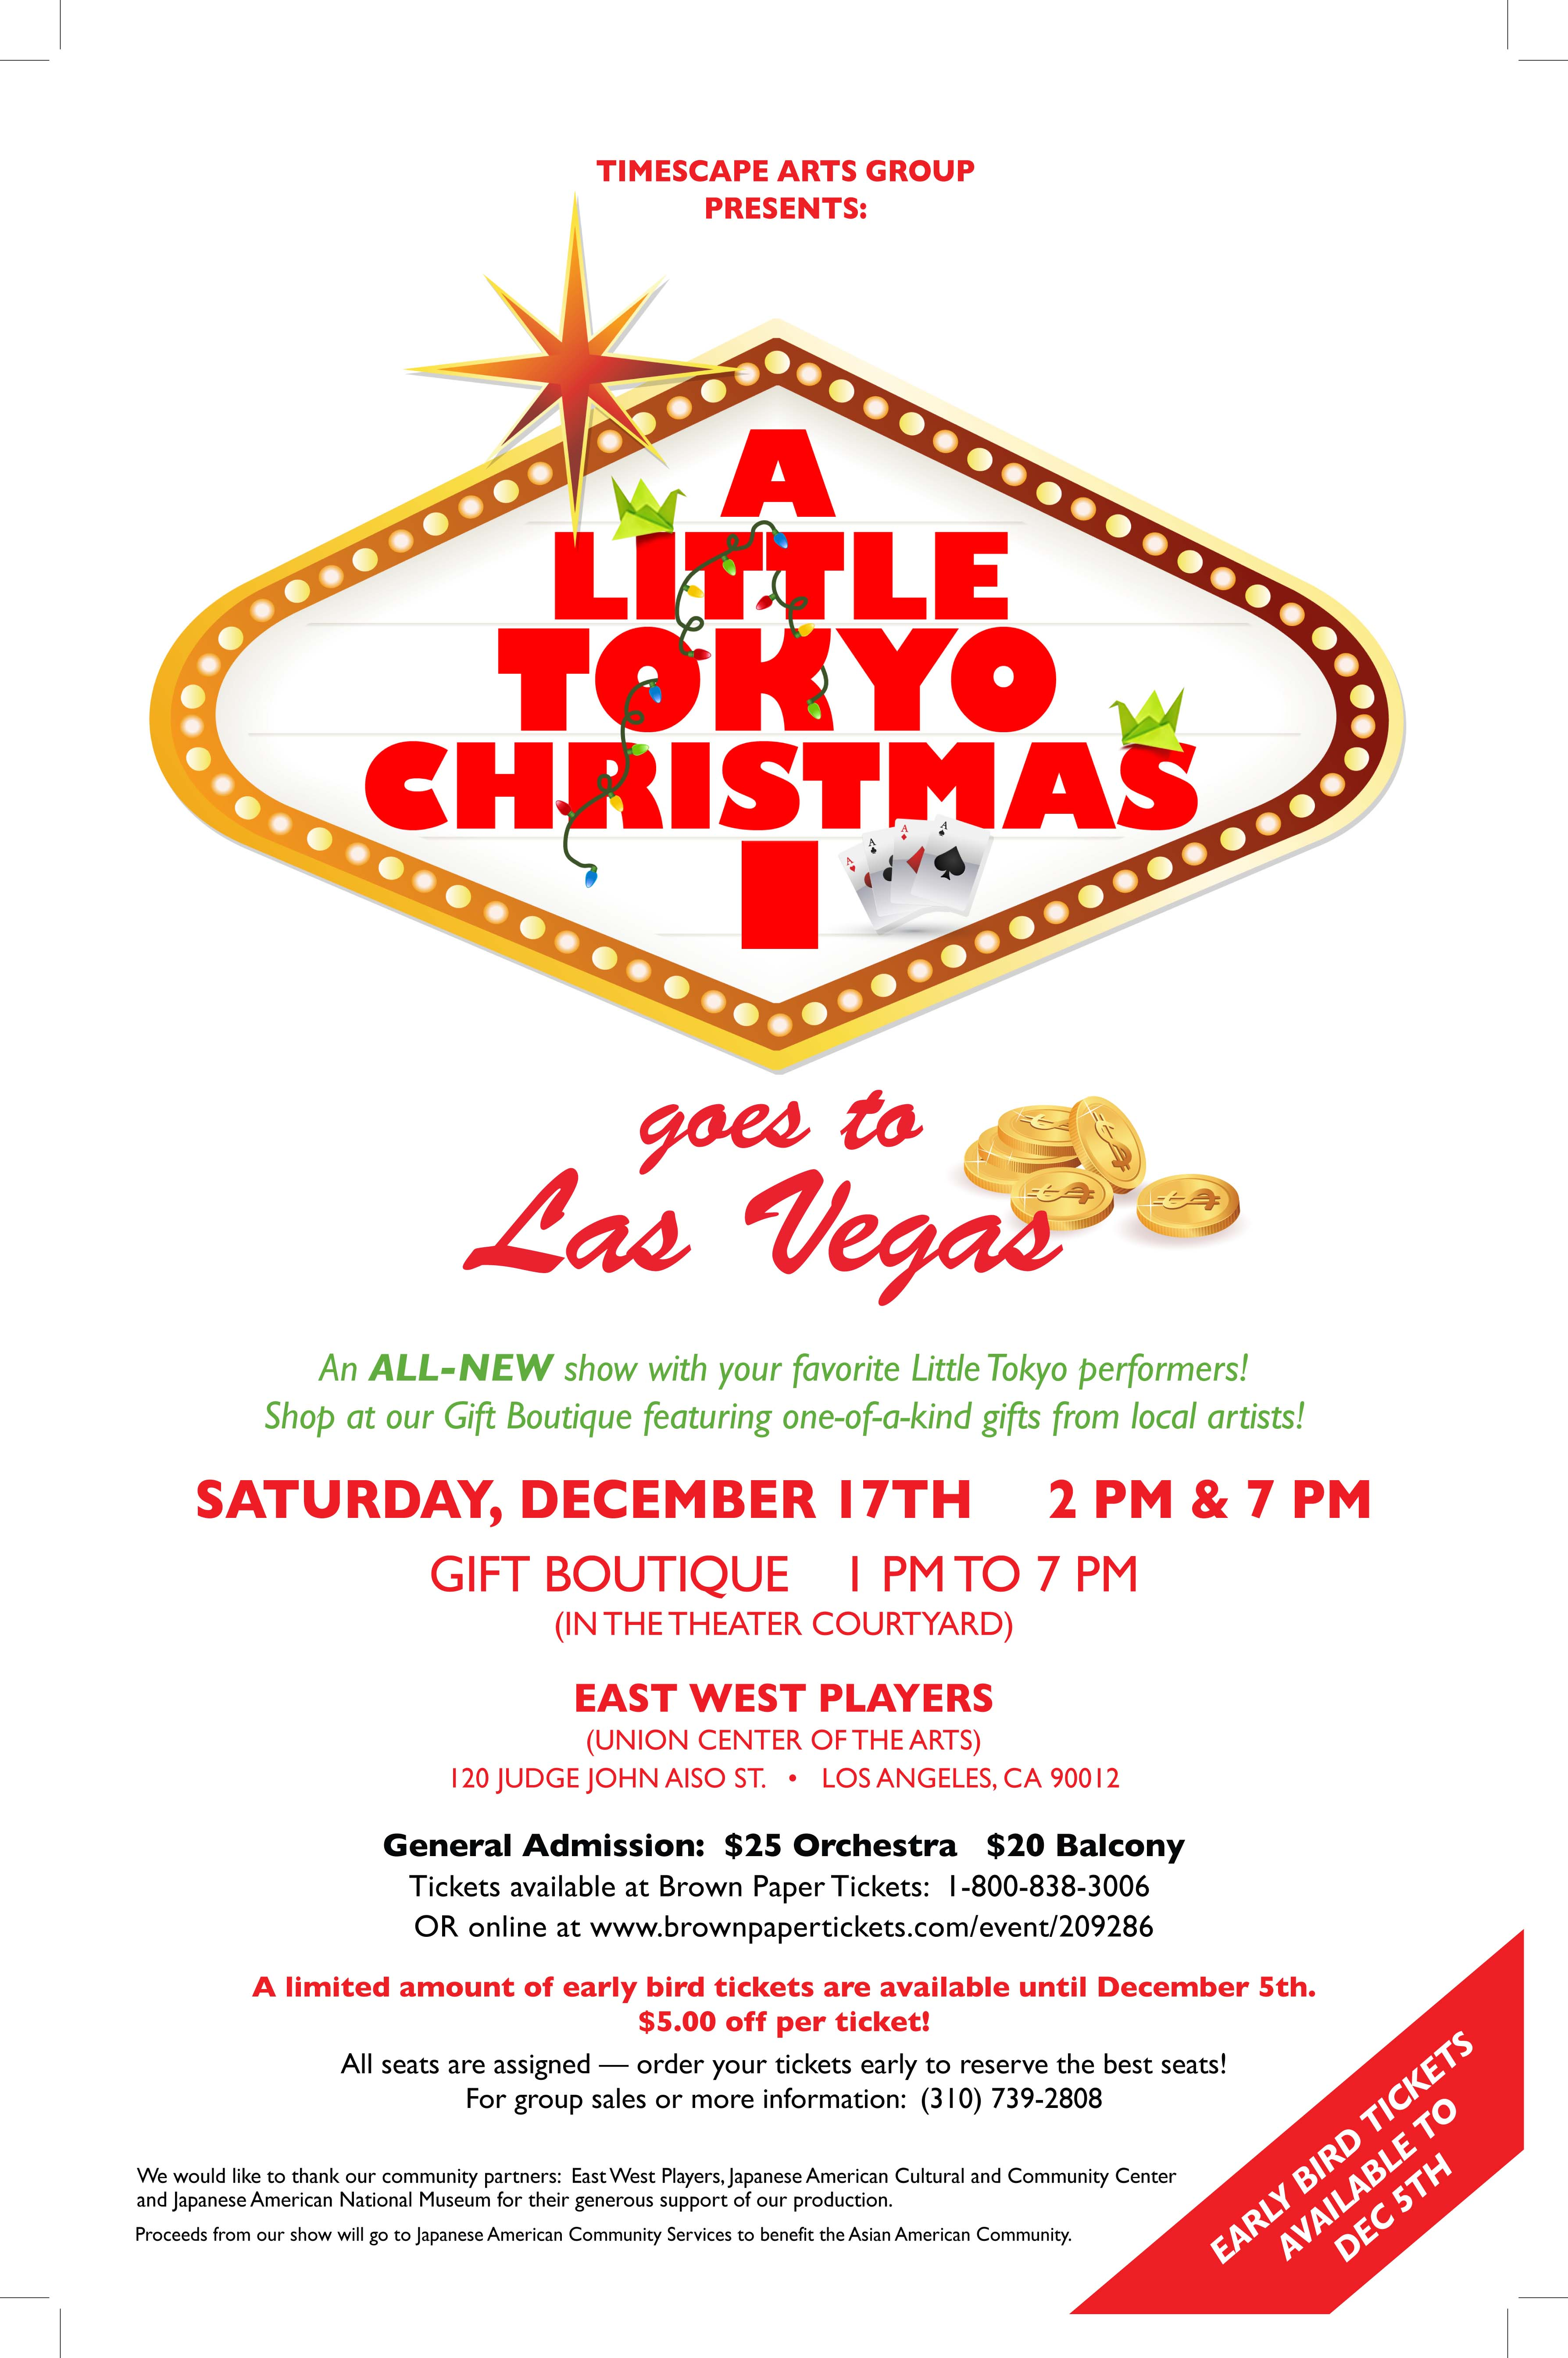 a little tokyo christmas goes to las vegas